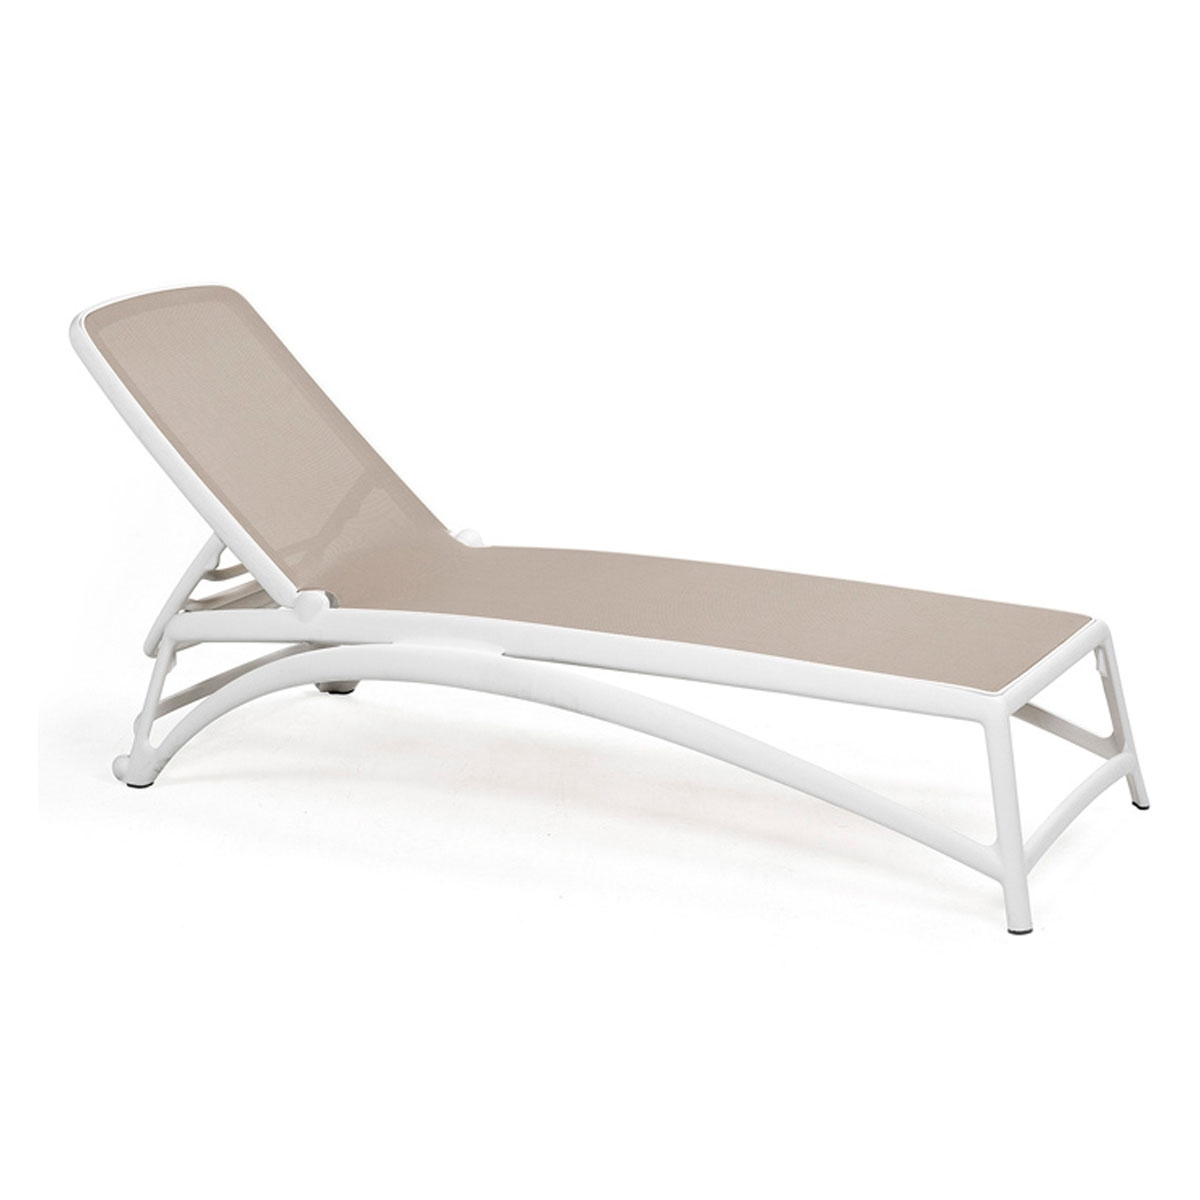 Transat design nardi atlantico ebay for Transat terrasse design